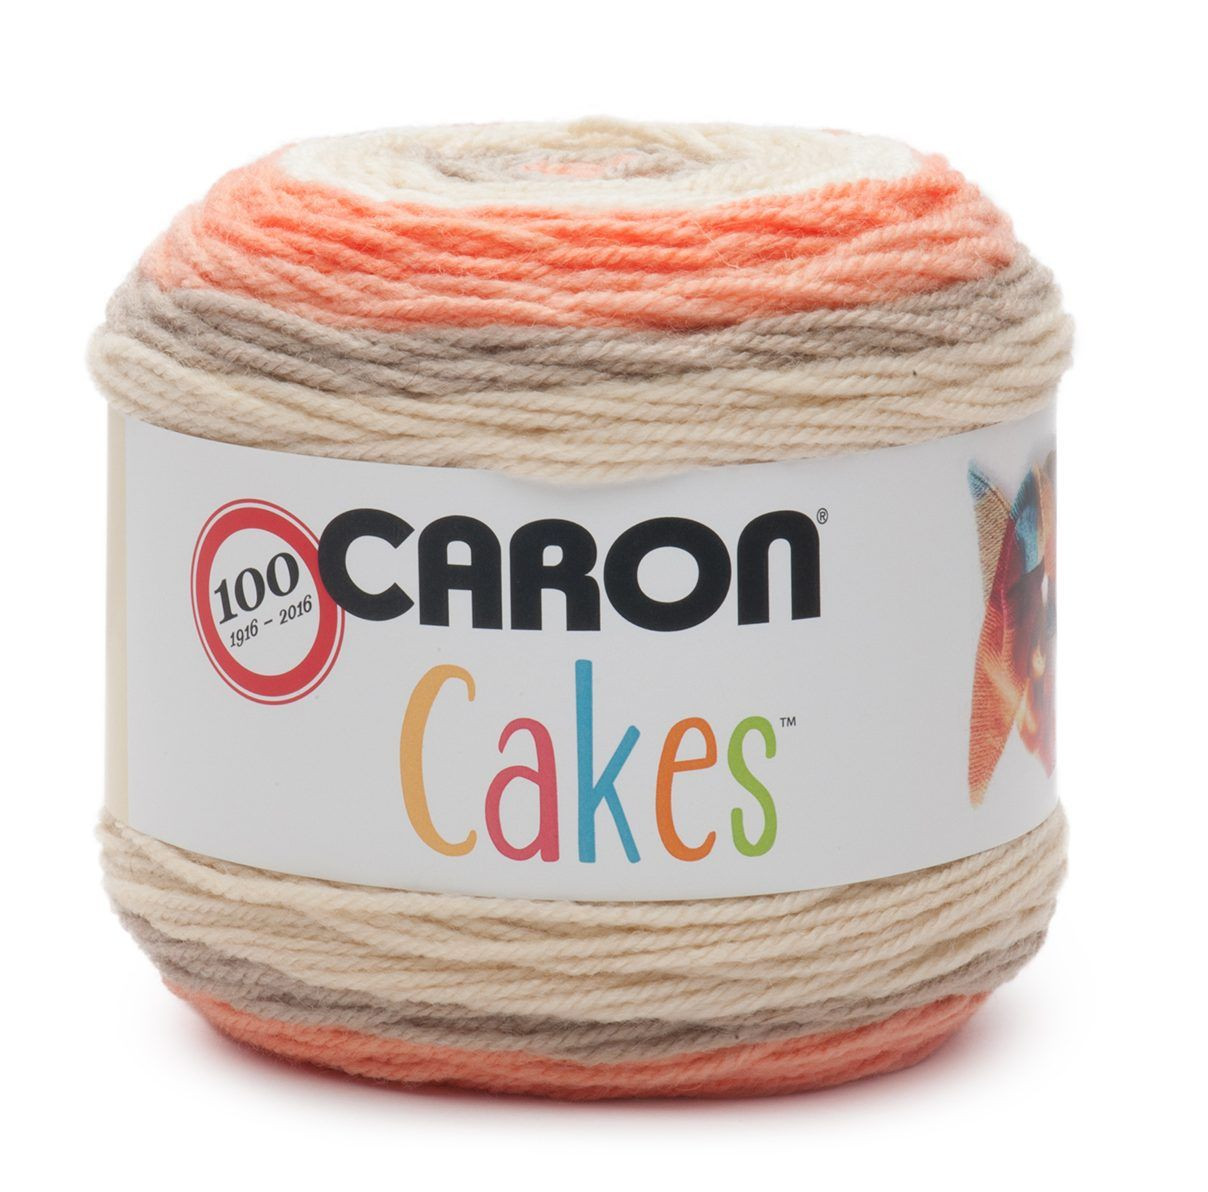 Lovely Free Crochet Patterns Featuring Caron Cakes Yarn Caron Cakes Colors Of Delightful 42 Pics Caron Cakes Colors